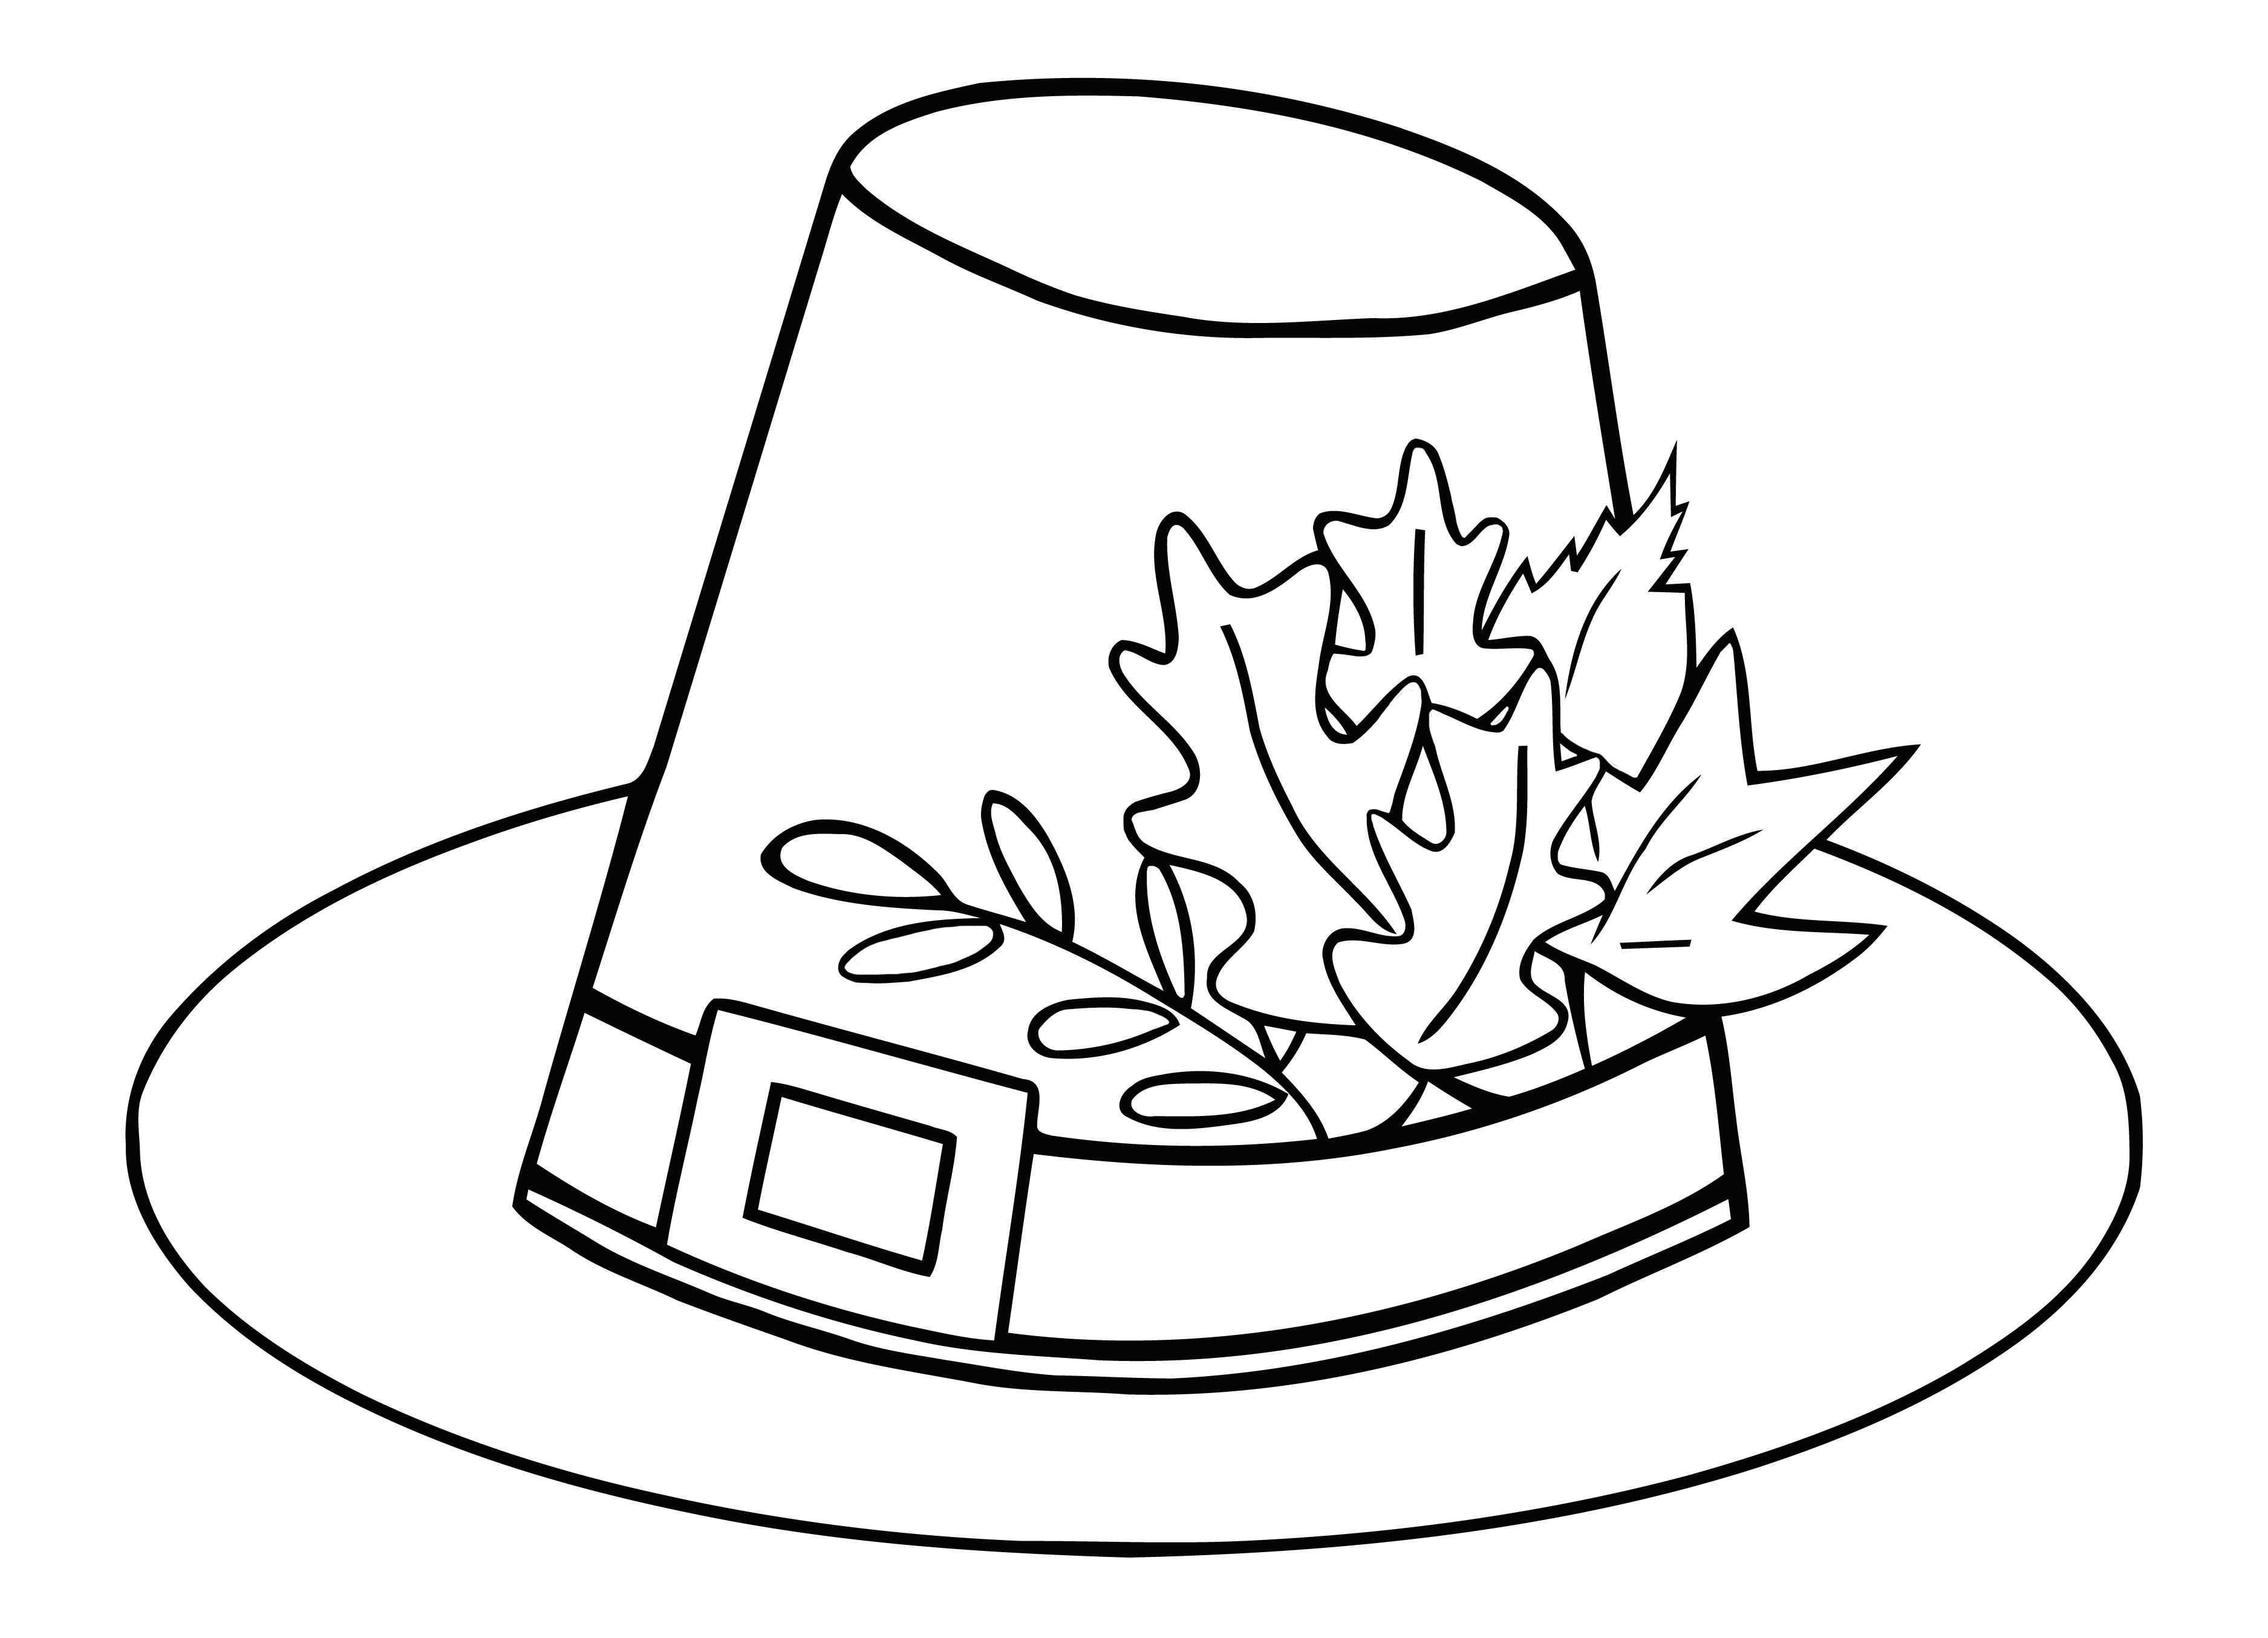 Coloring Pages for Boys -2015- Dr. Odd | Coloring: Autumn ...